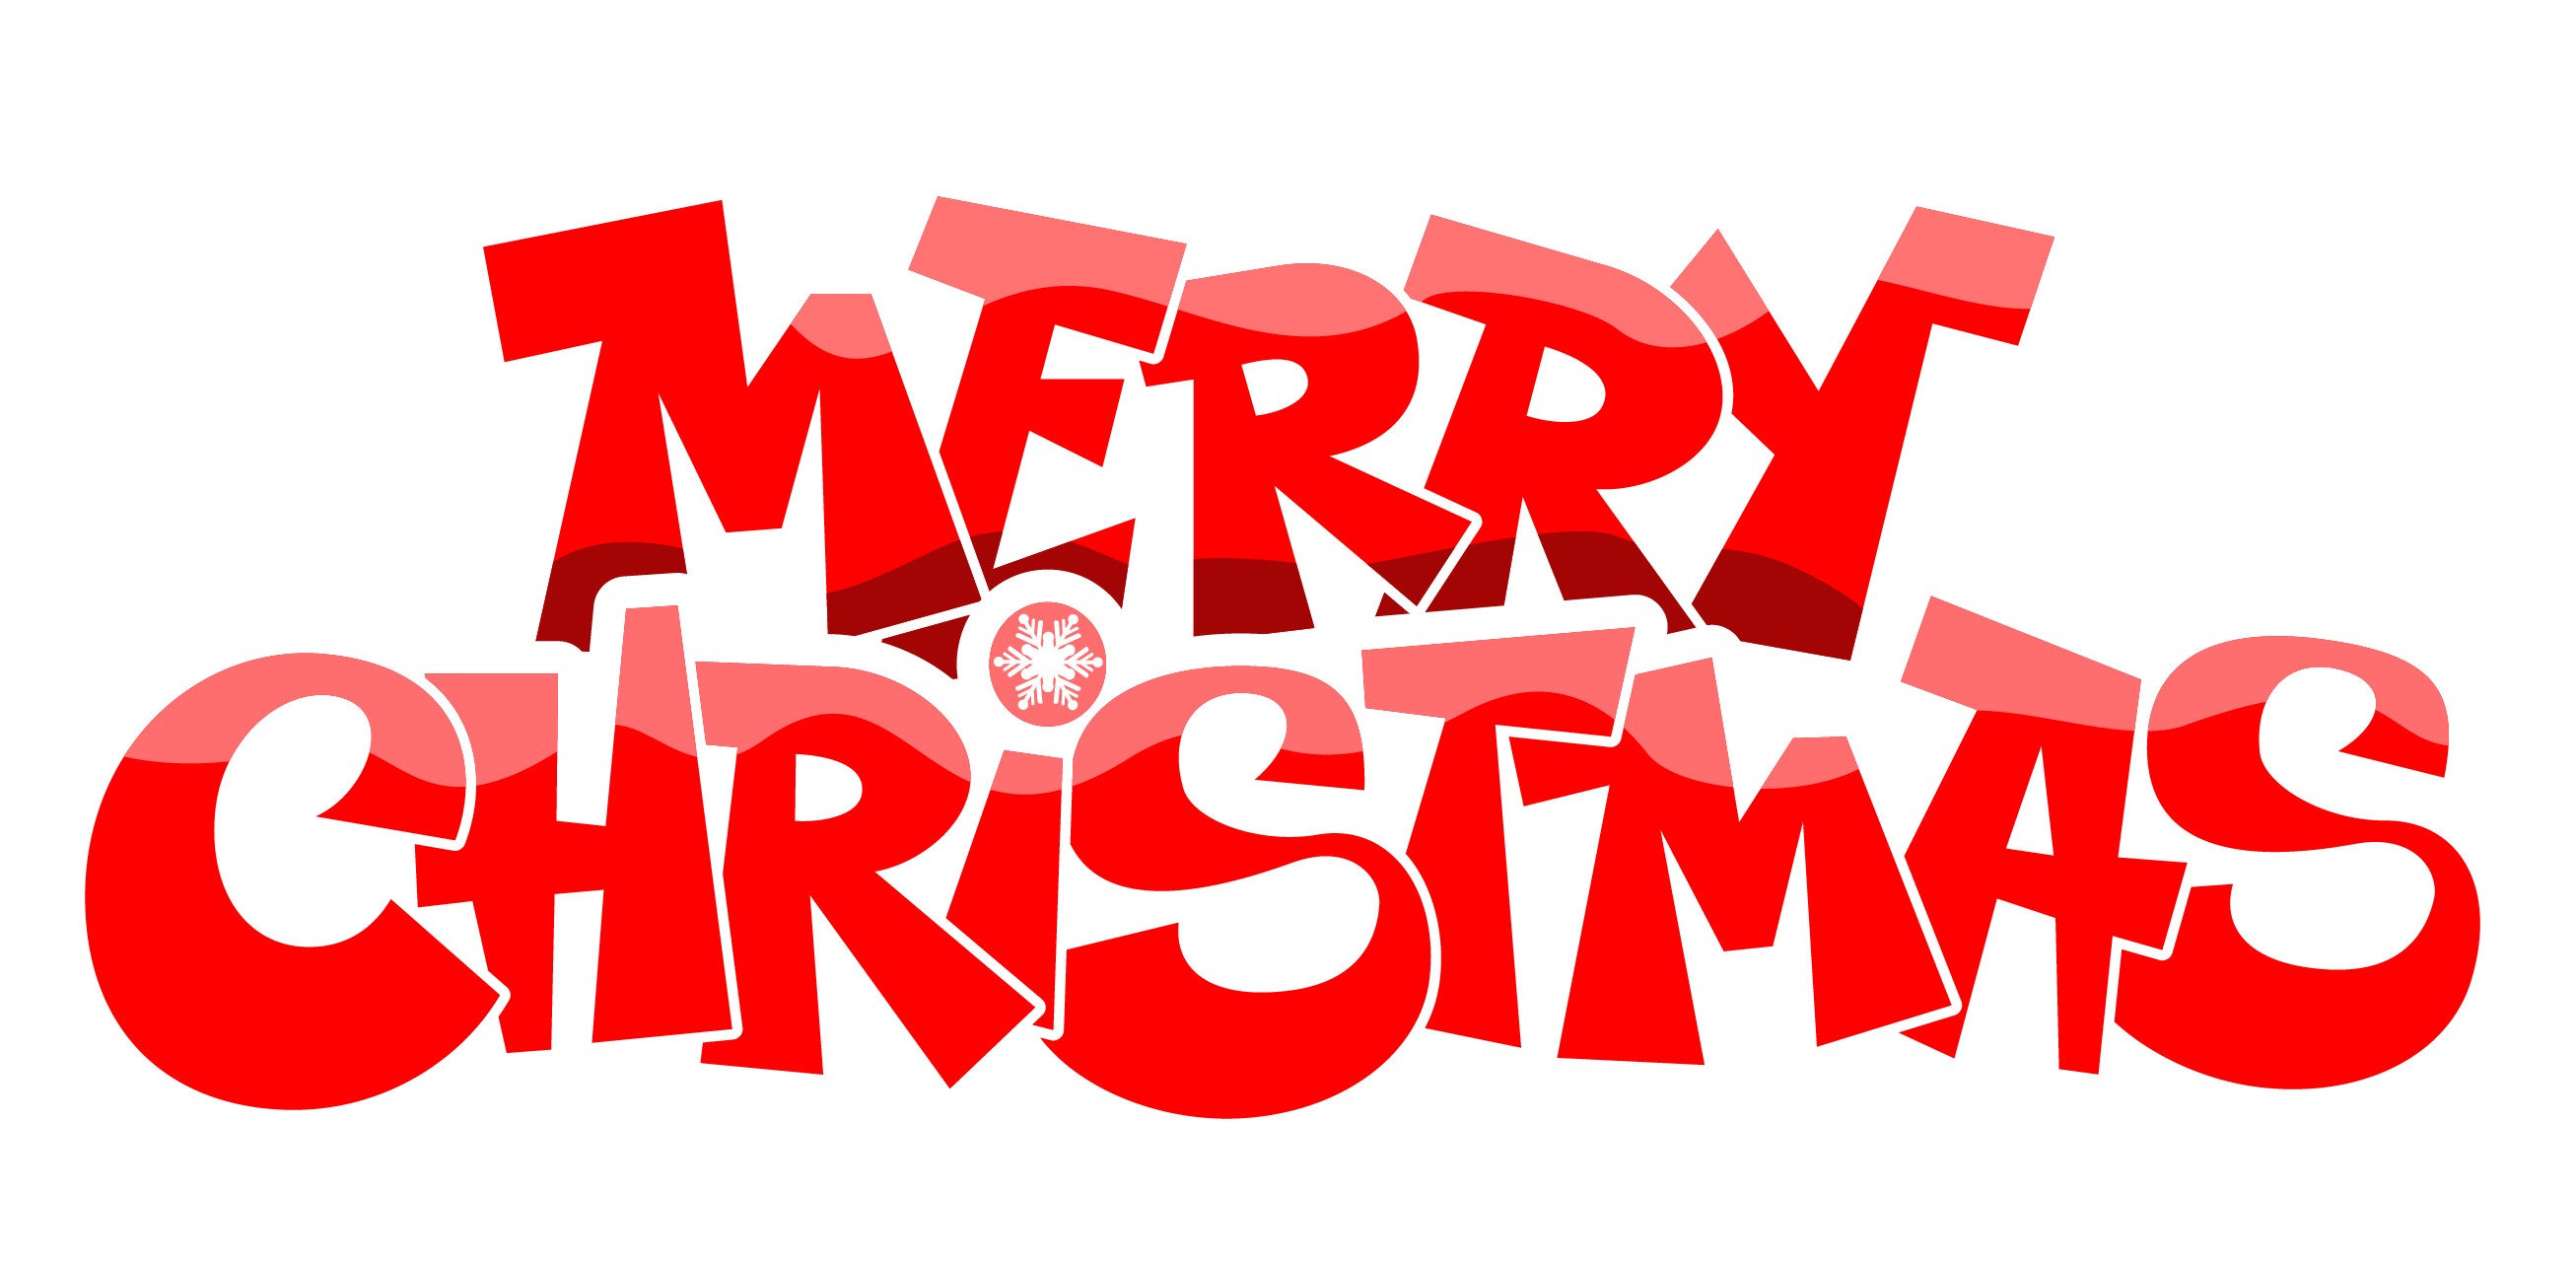 Clipart christmas song. A carol sort of